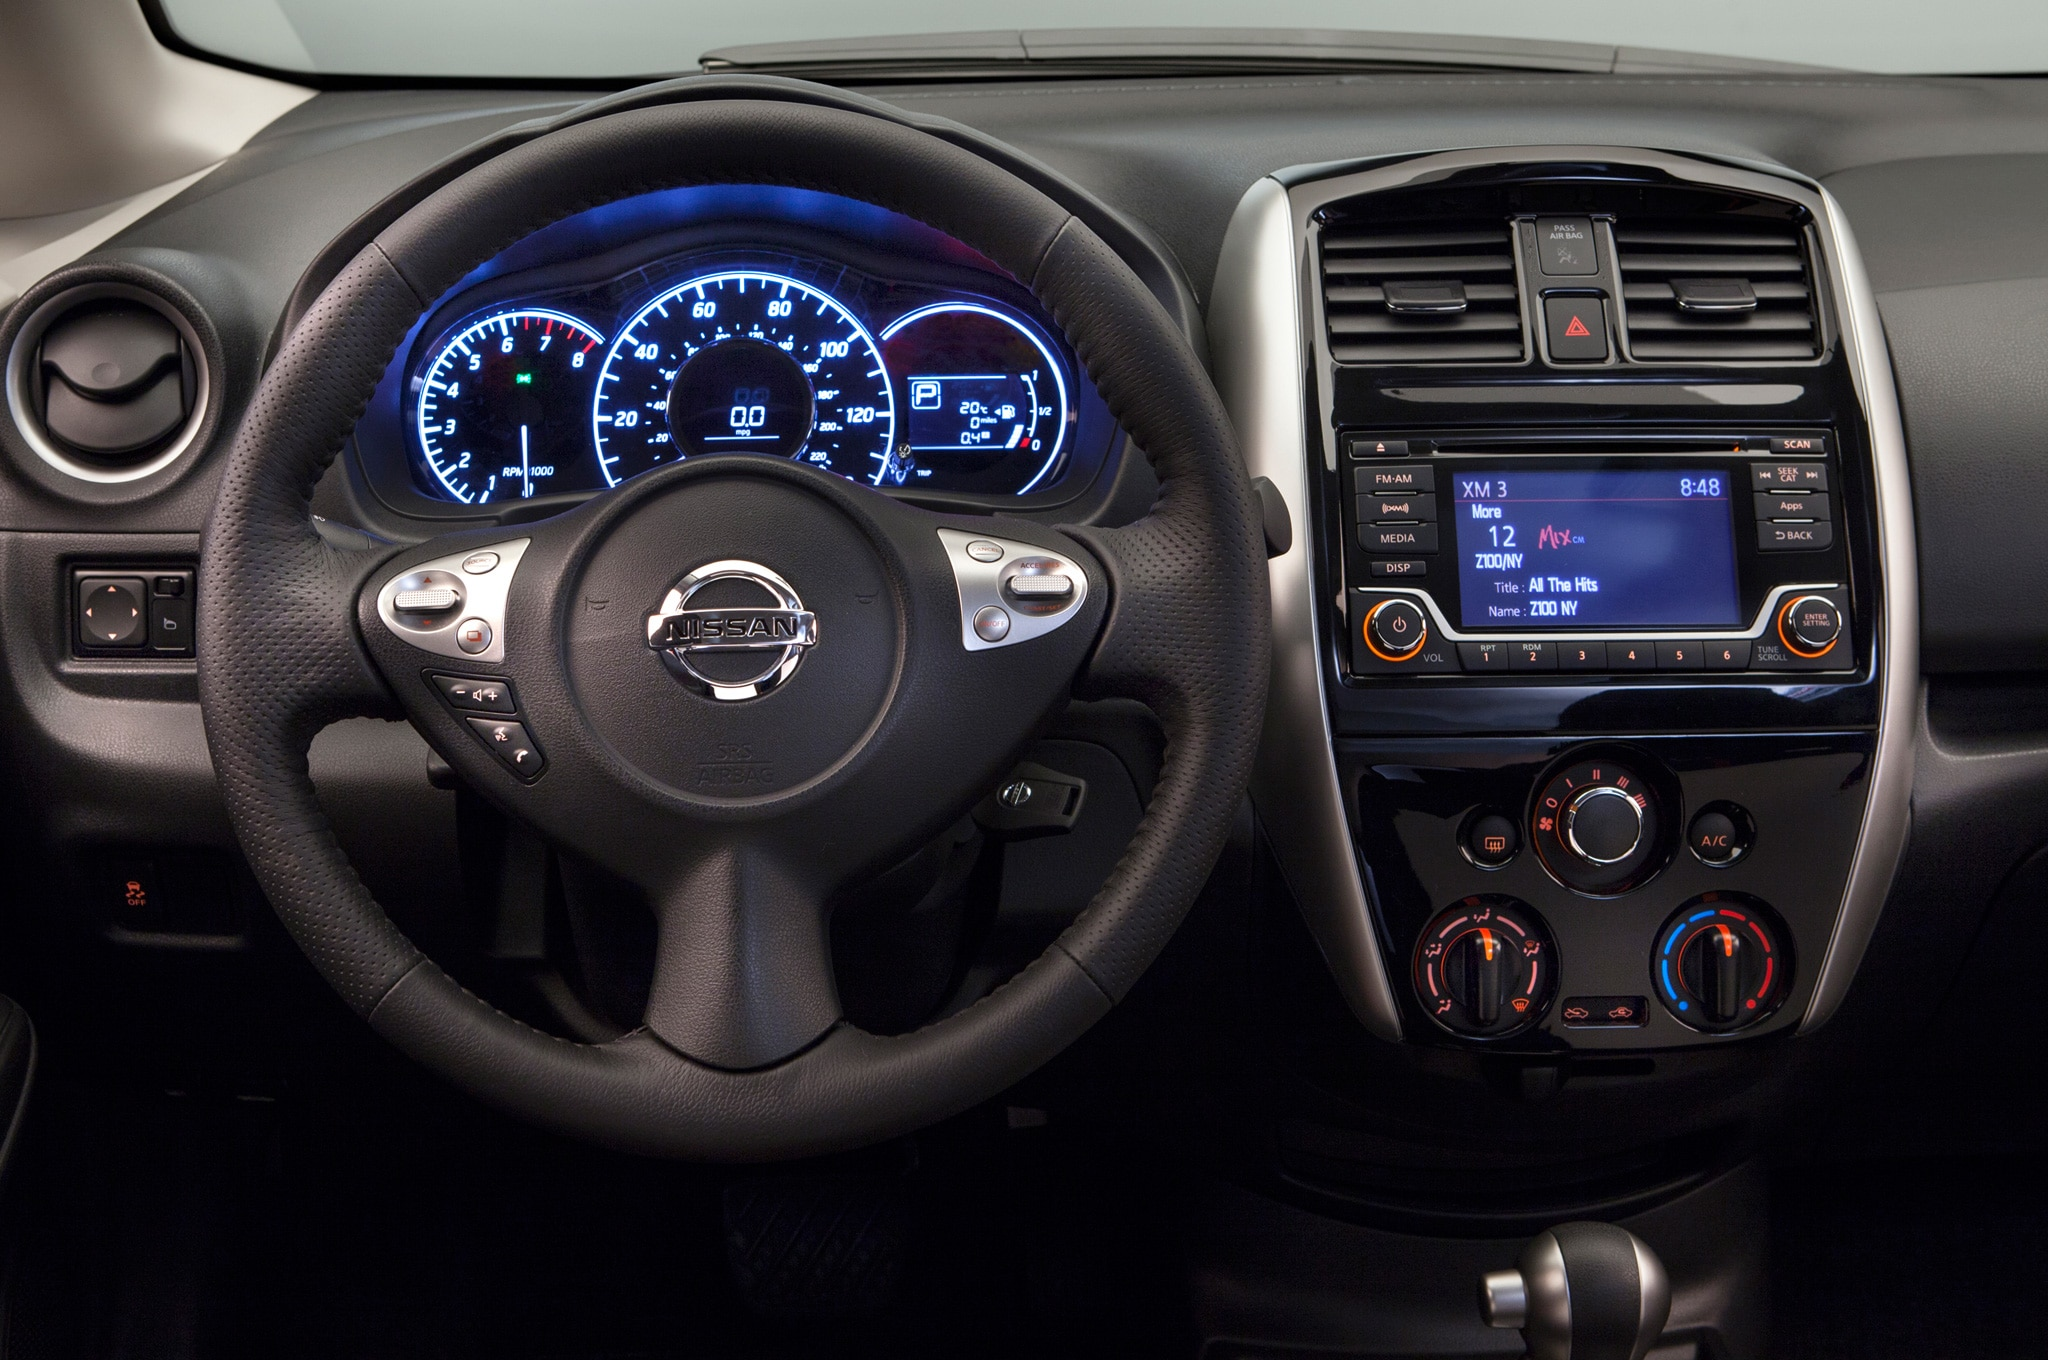 2015 nissan versa note sr debuts at 2014 chicago auto show show more vanachro Choice Image